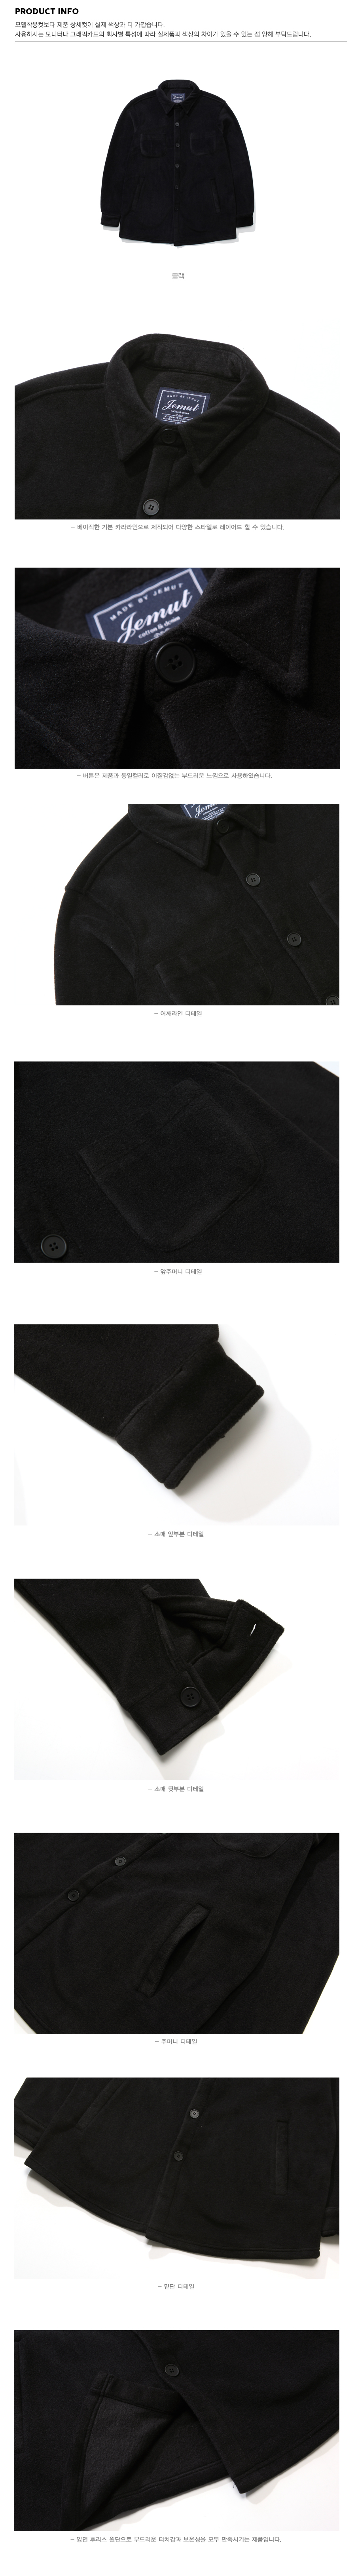 20170921_fleece_shirts_detail_black.jpg